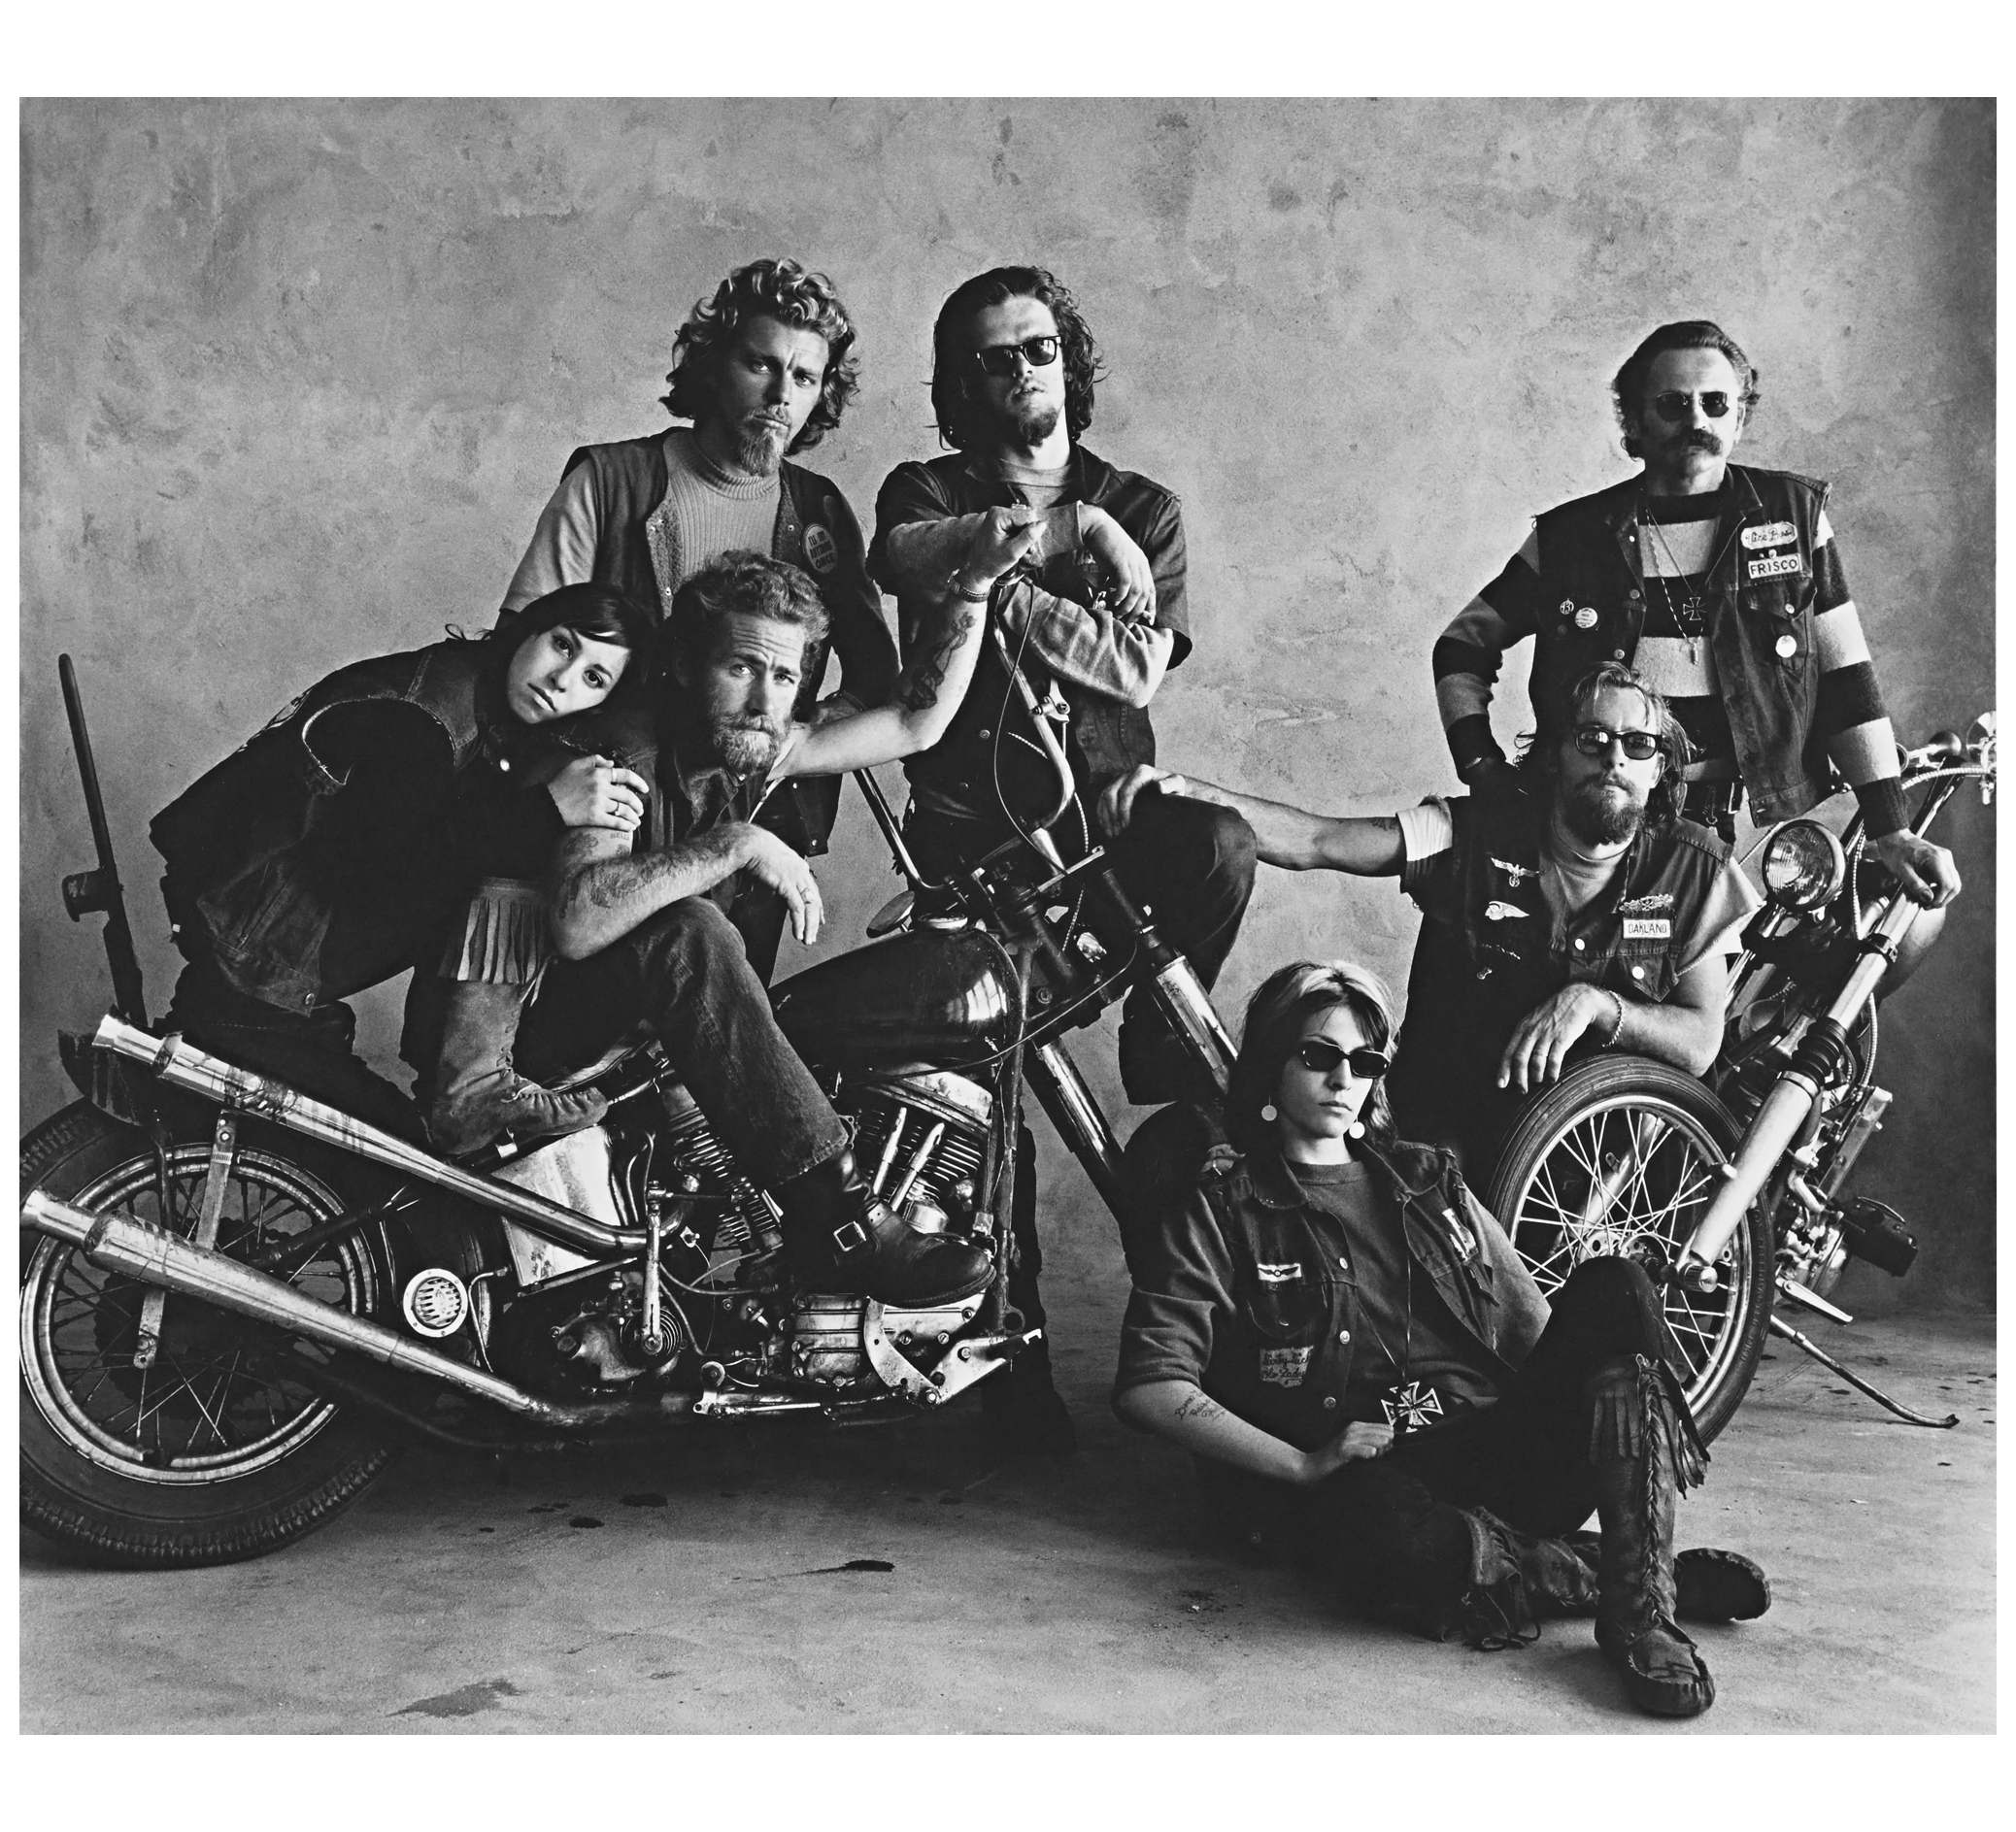 5 Coolest Photos We Found Of The Hells Angels MC (And 5 Of The Bandidos)